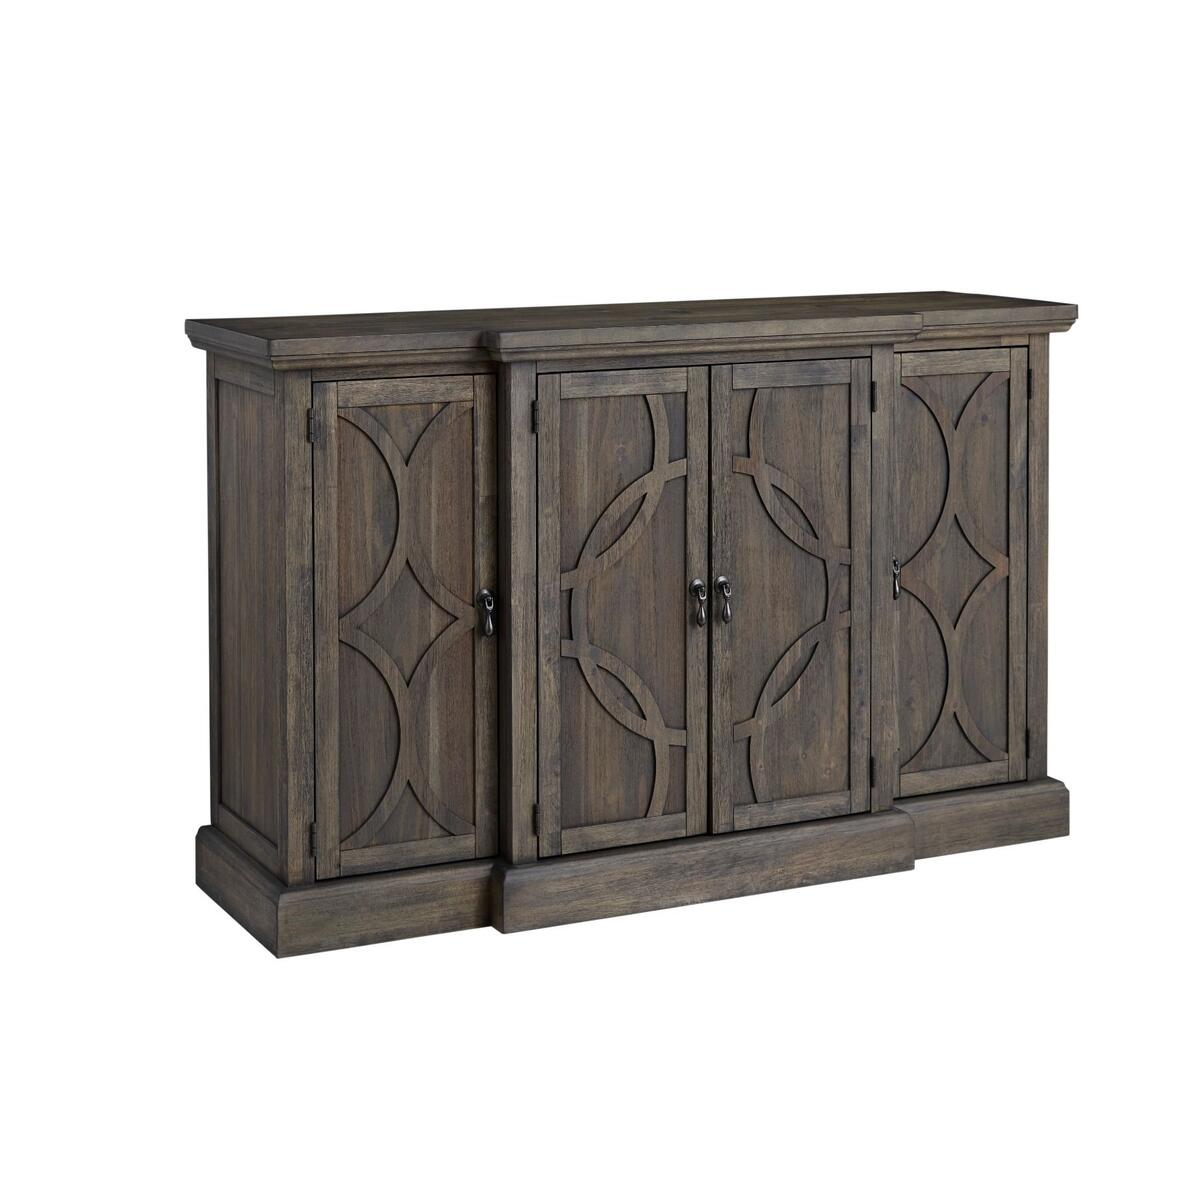 Trenton Dining Room Server, Brown